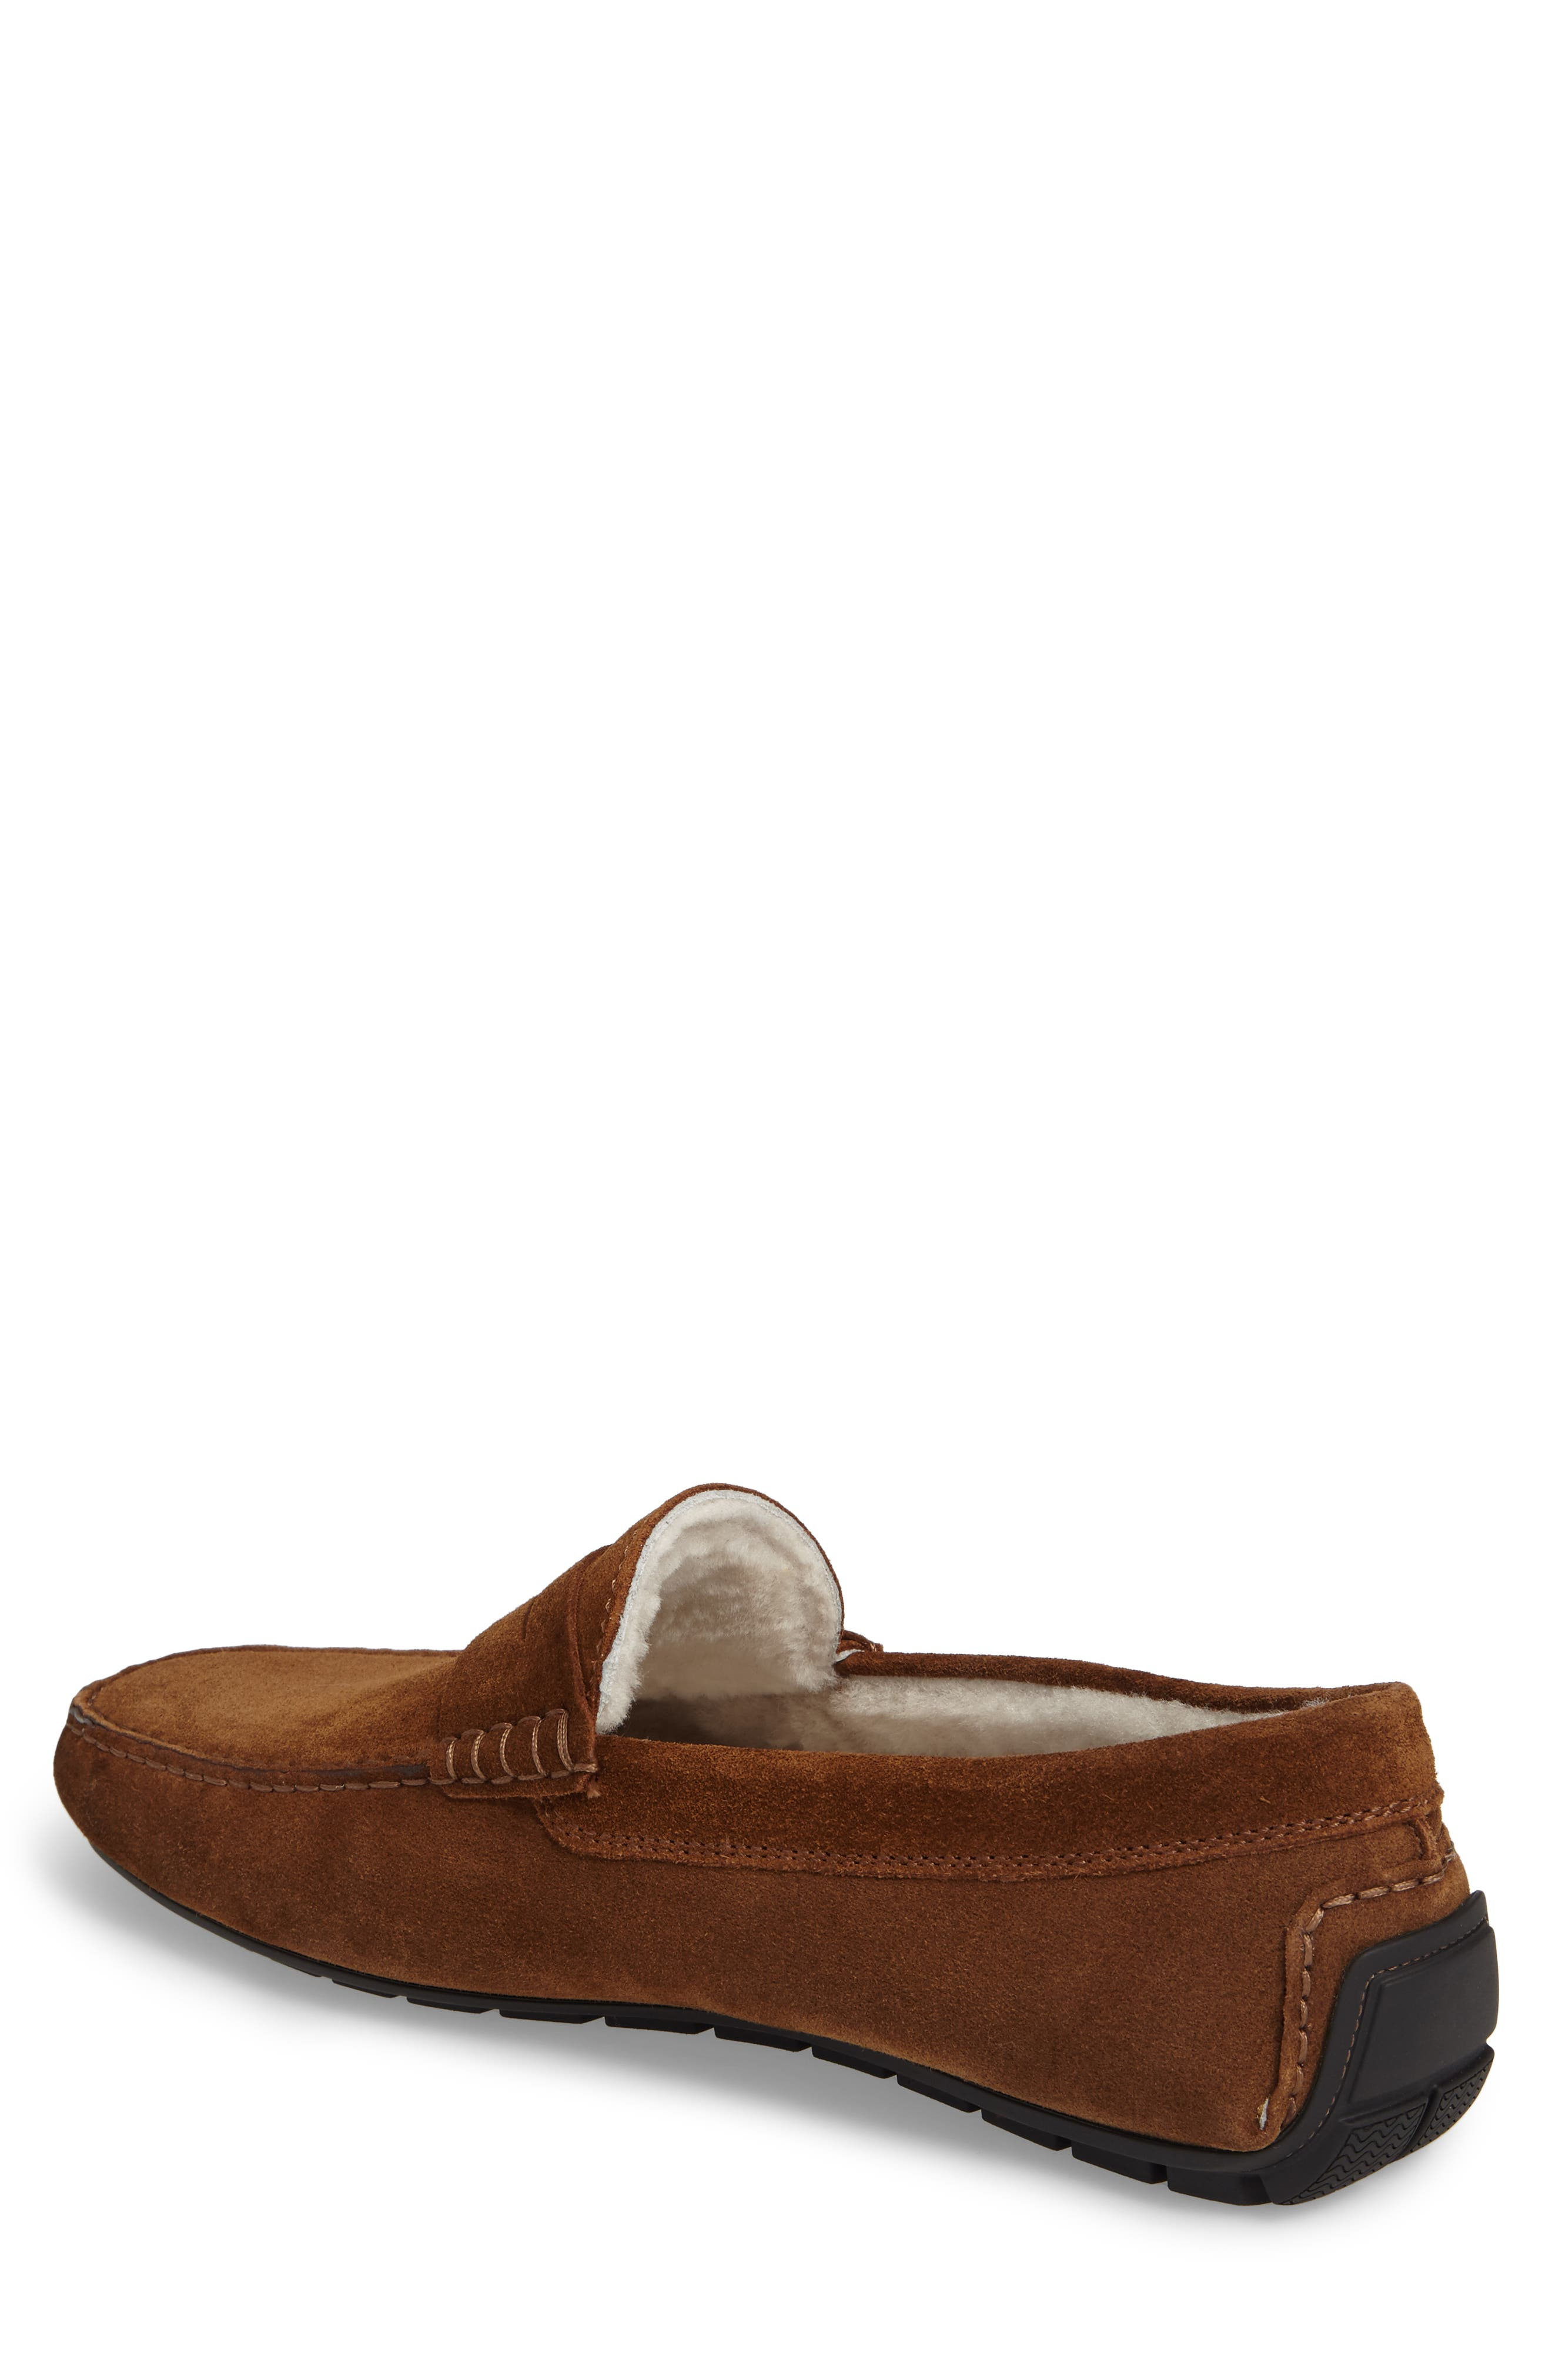 Norse Penny Loafer with Genuine Shearling,                             Alternate thumbnail 2, color,                             Brown/ Brown Suede Leather